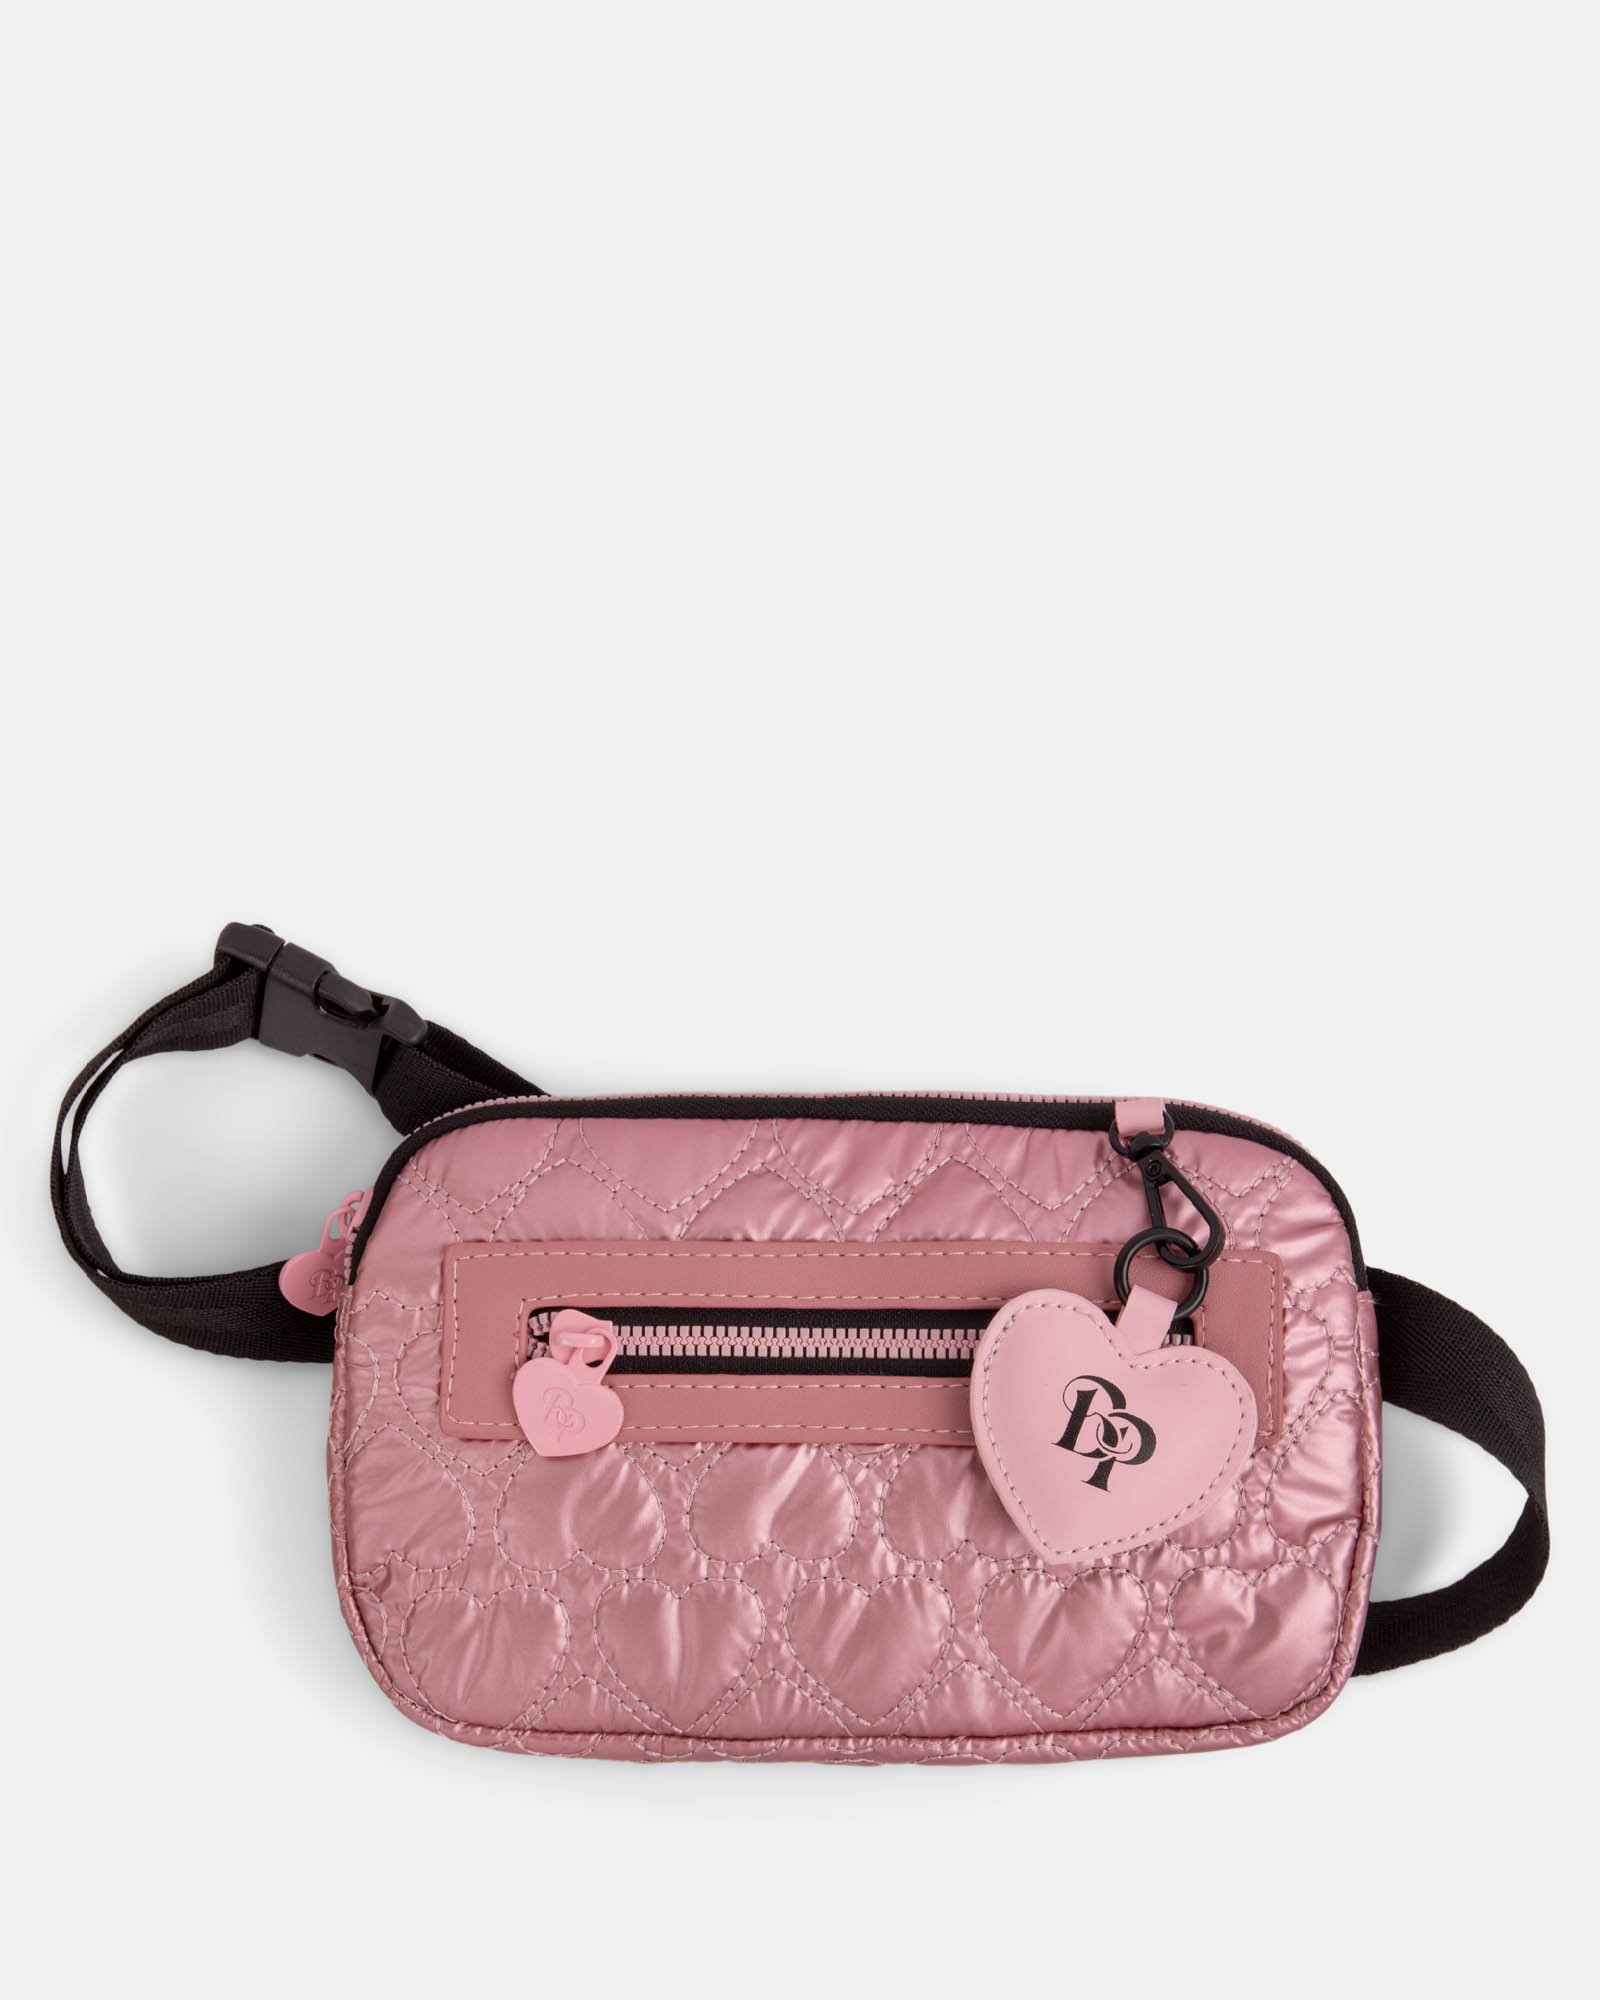 BLACKPINK - Be Still My Heart Collection - Money belt Soft, quilted pink material with a delicate heart-shaped pattern - pink - BLACKPINK - Zoom